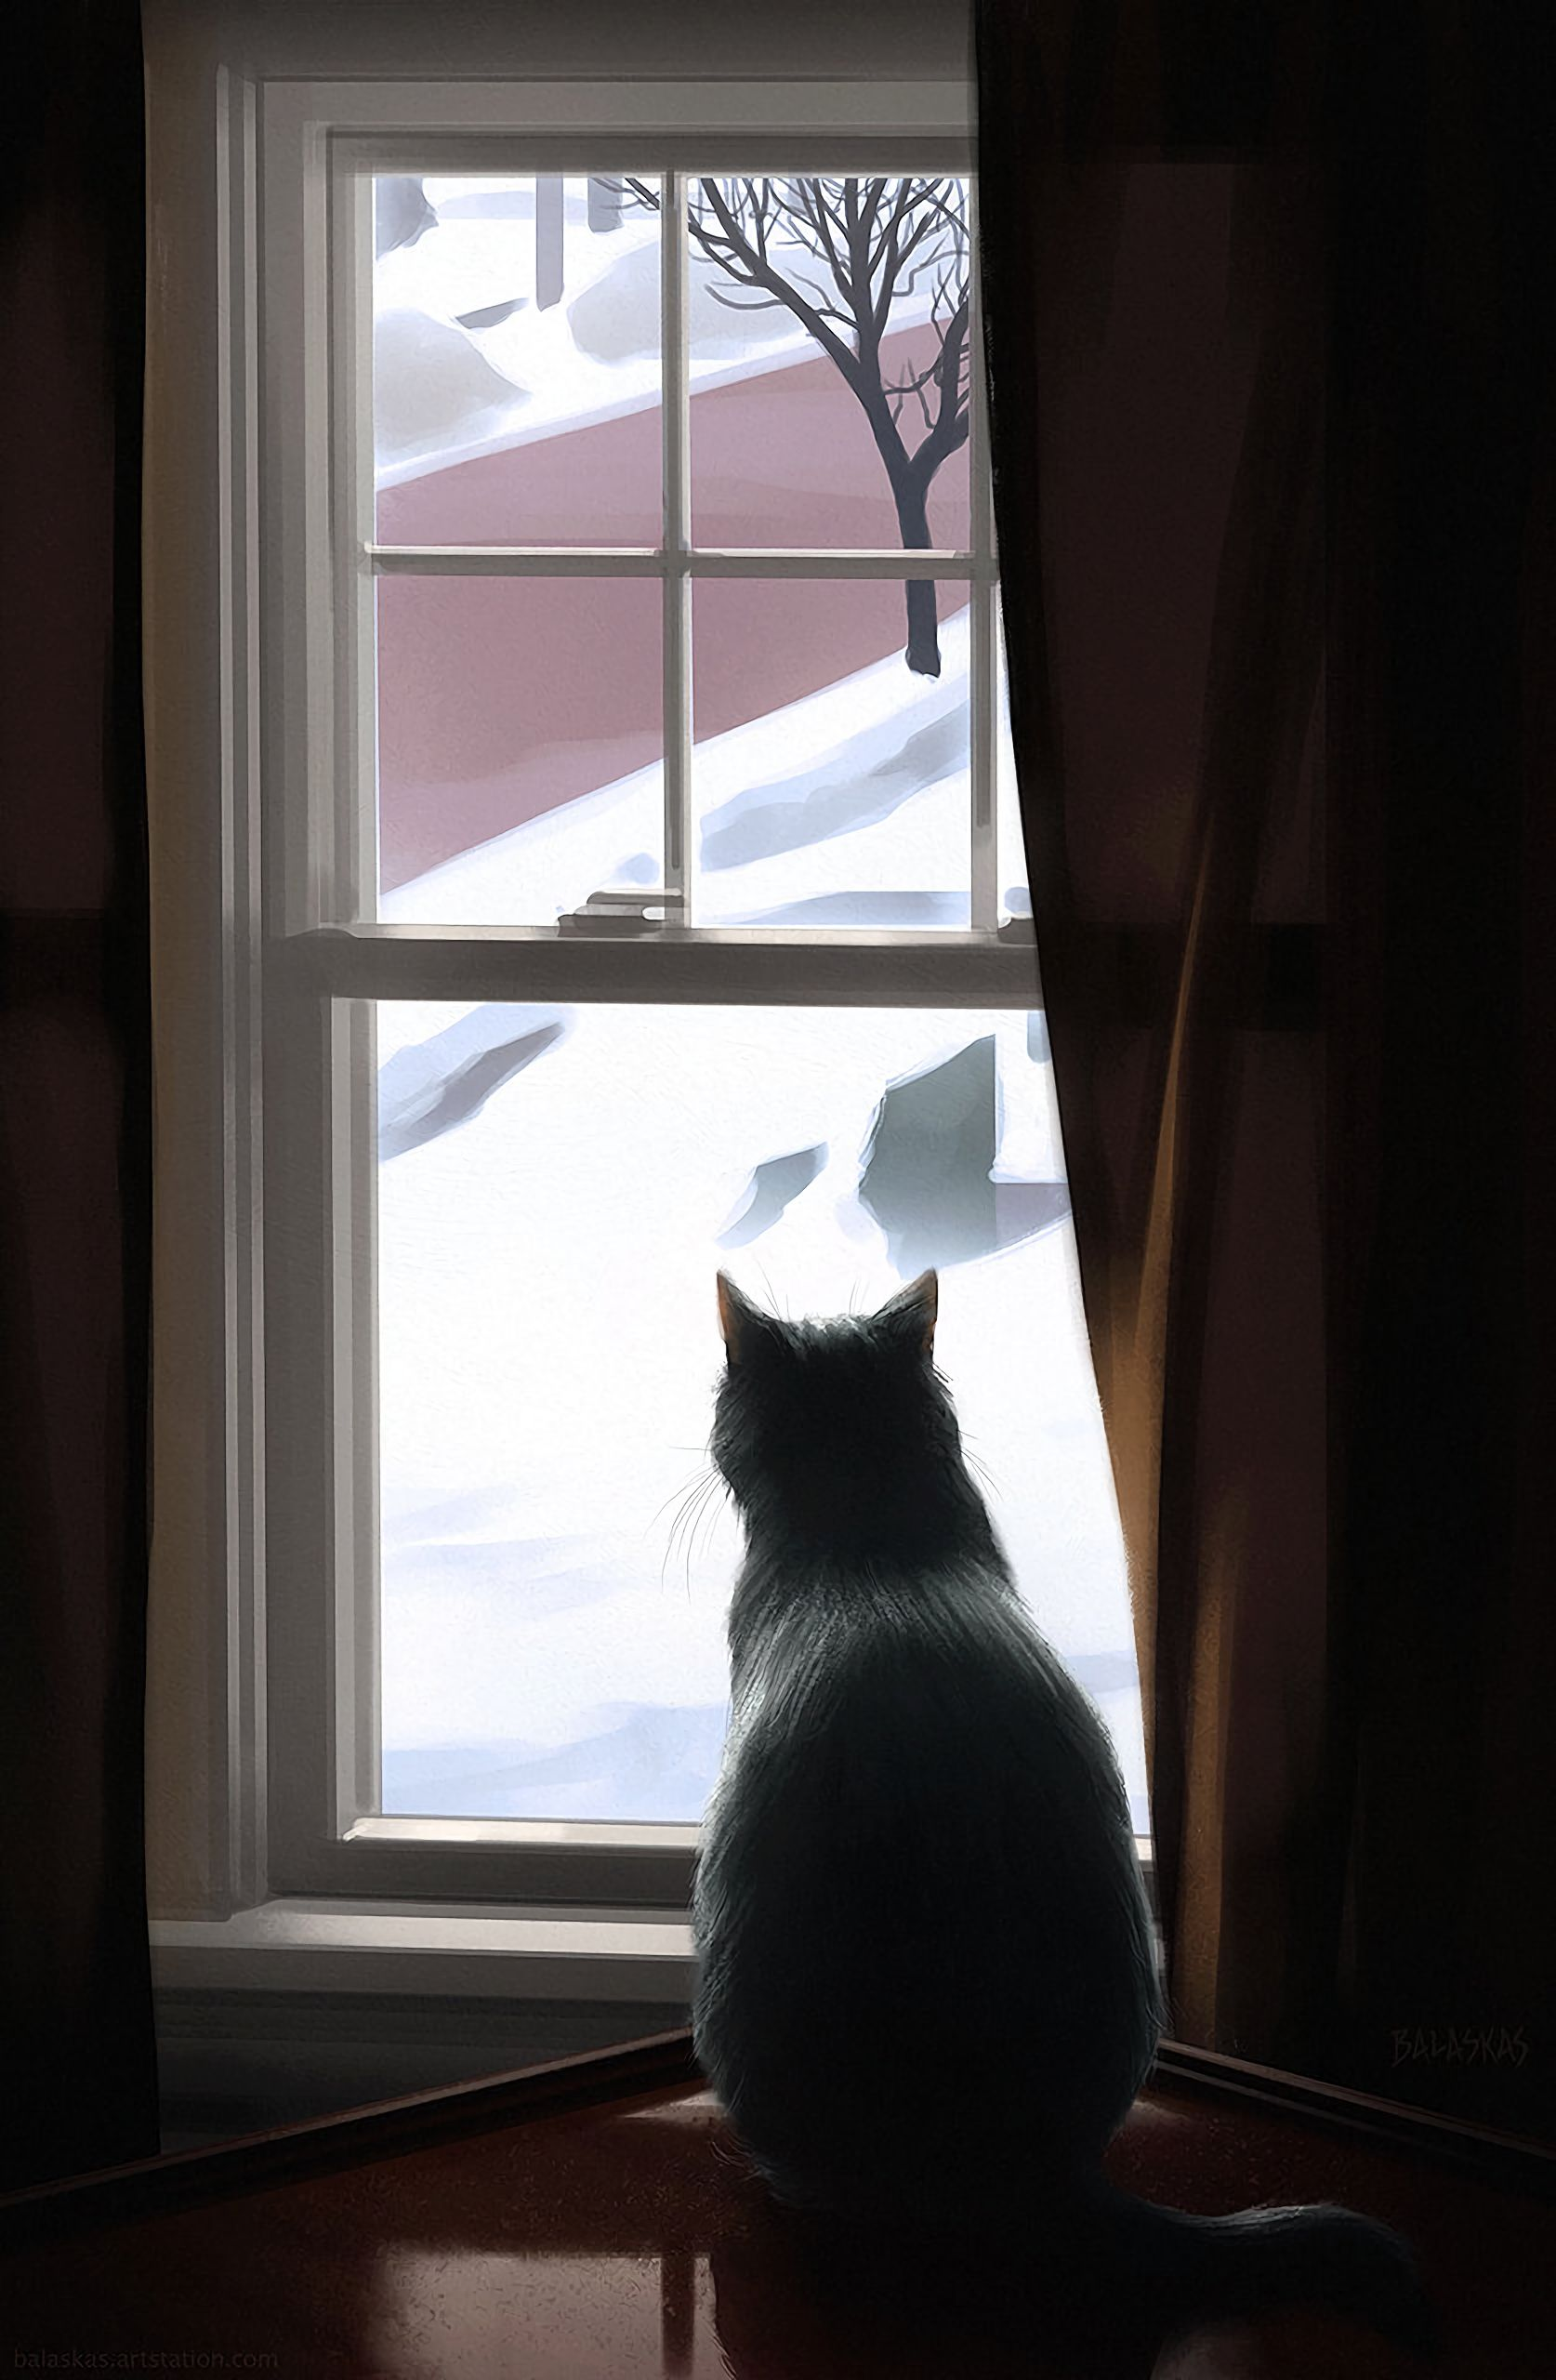 86610 download wallpaper Animals, Winter, Cat, Window, Coziness, Comfort screensavers and pictures for free